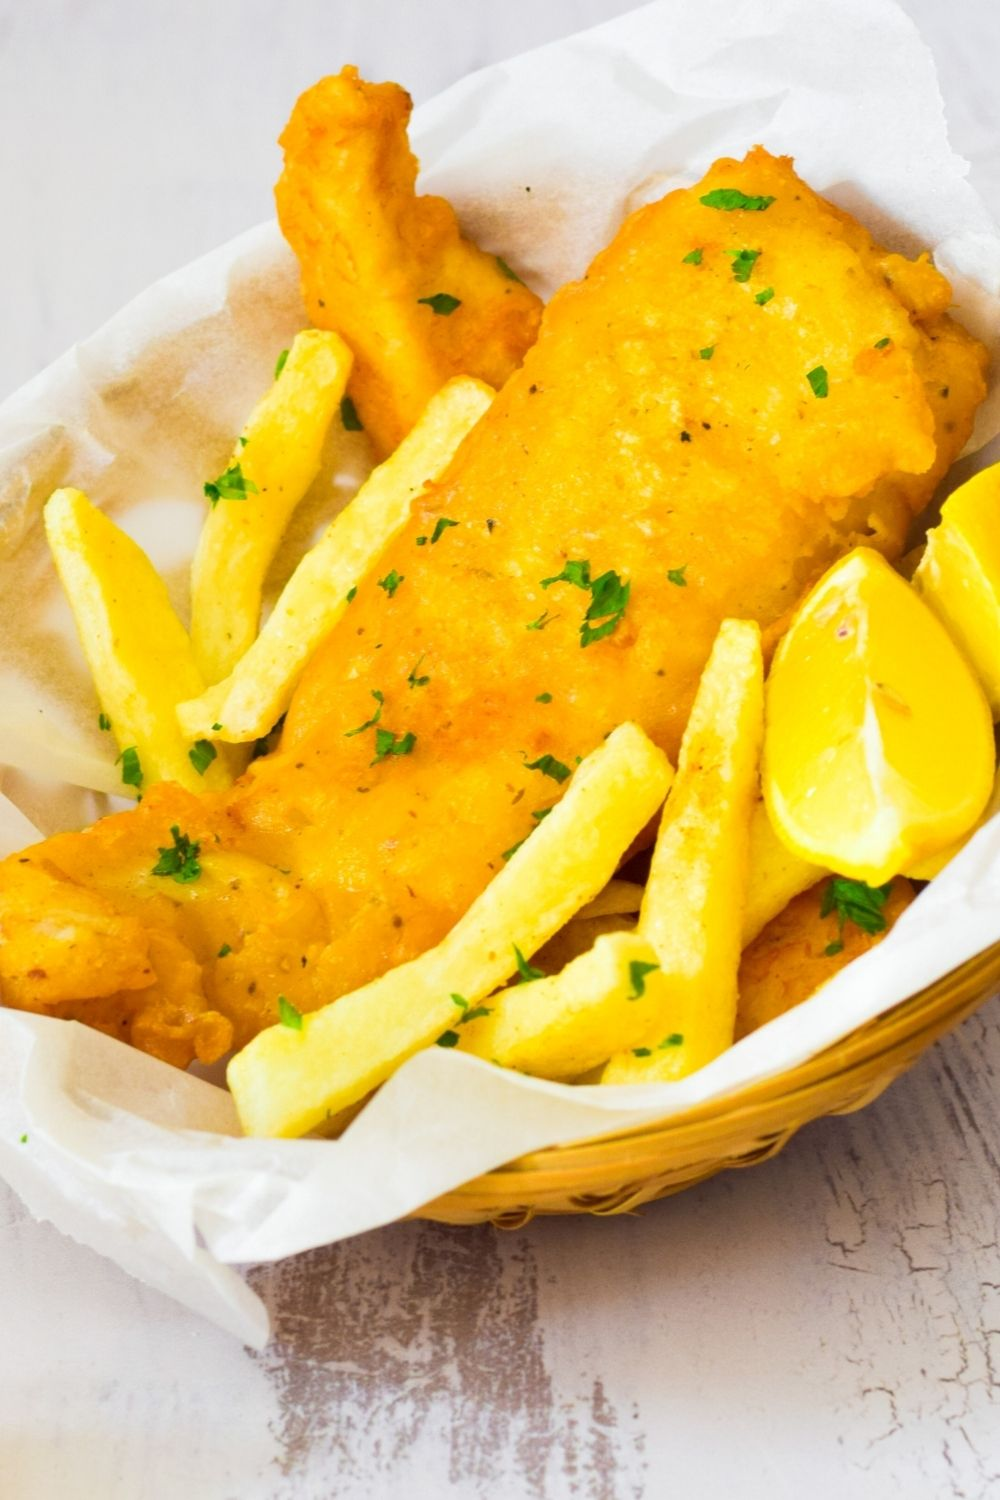 Crispy Battered Fish in a basket with chips and lemon